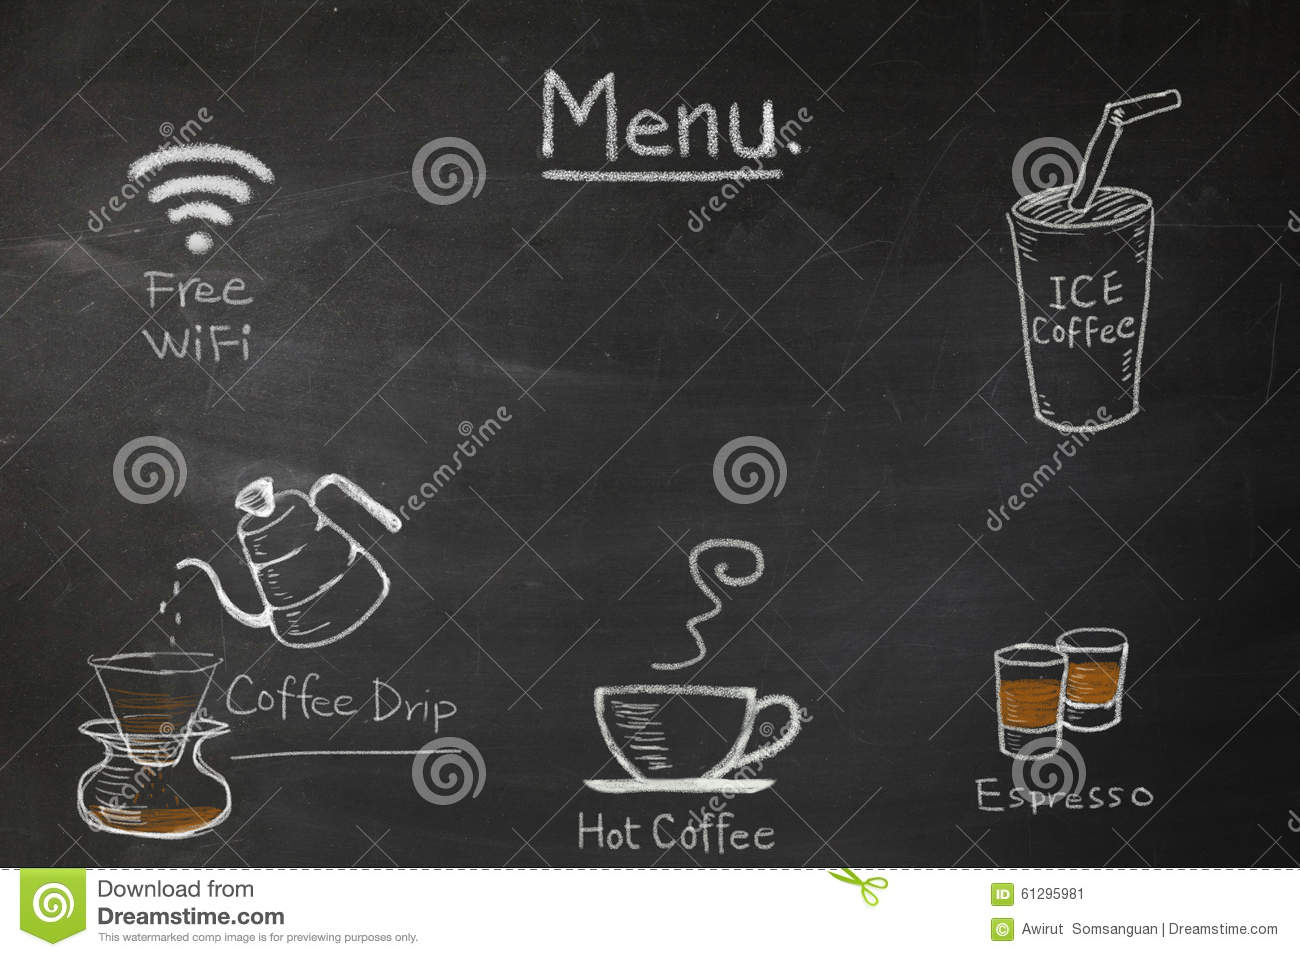 coffee menu on the chalkboard write by hand for coffee dessert clipart kids dessert clipart images